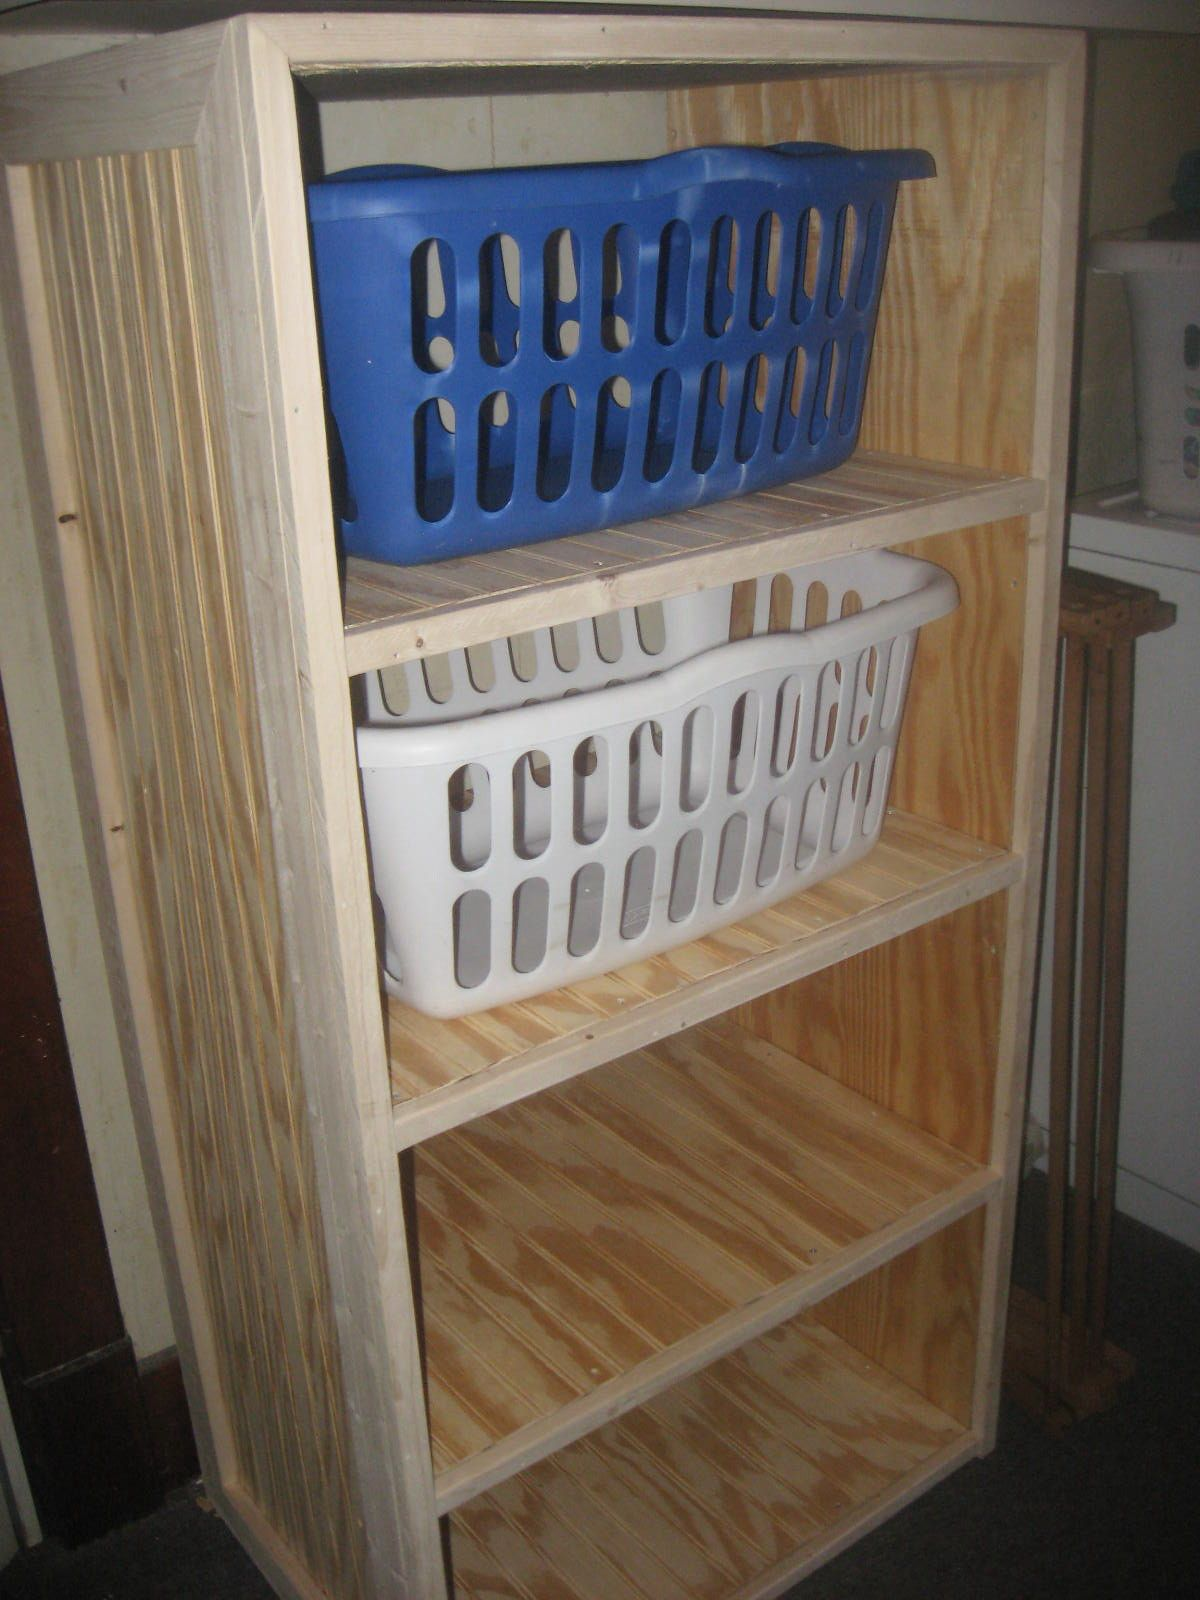 Diy Laundry Basket Dresser Frugal And Easy Thifty Sue Laundry Basket Dresser Diy Storage Dresser Laundry Basket Shelves